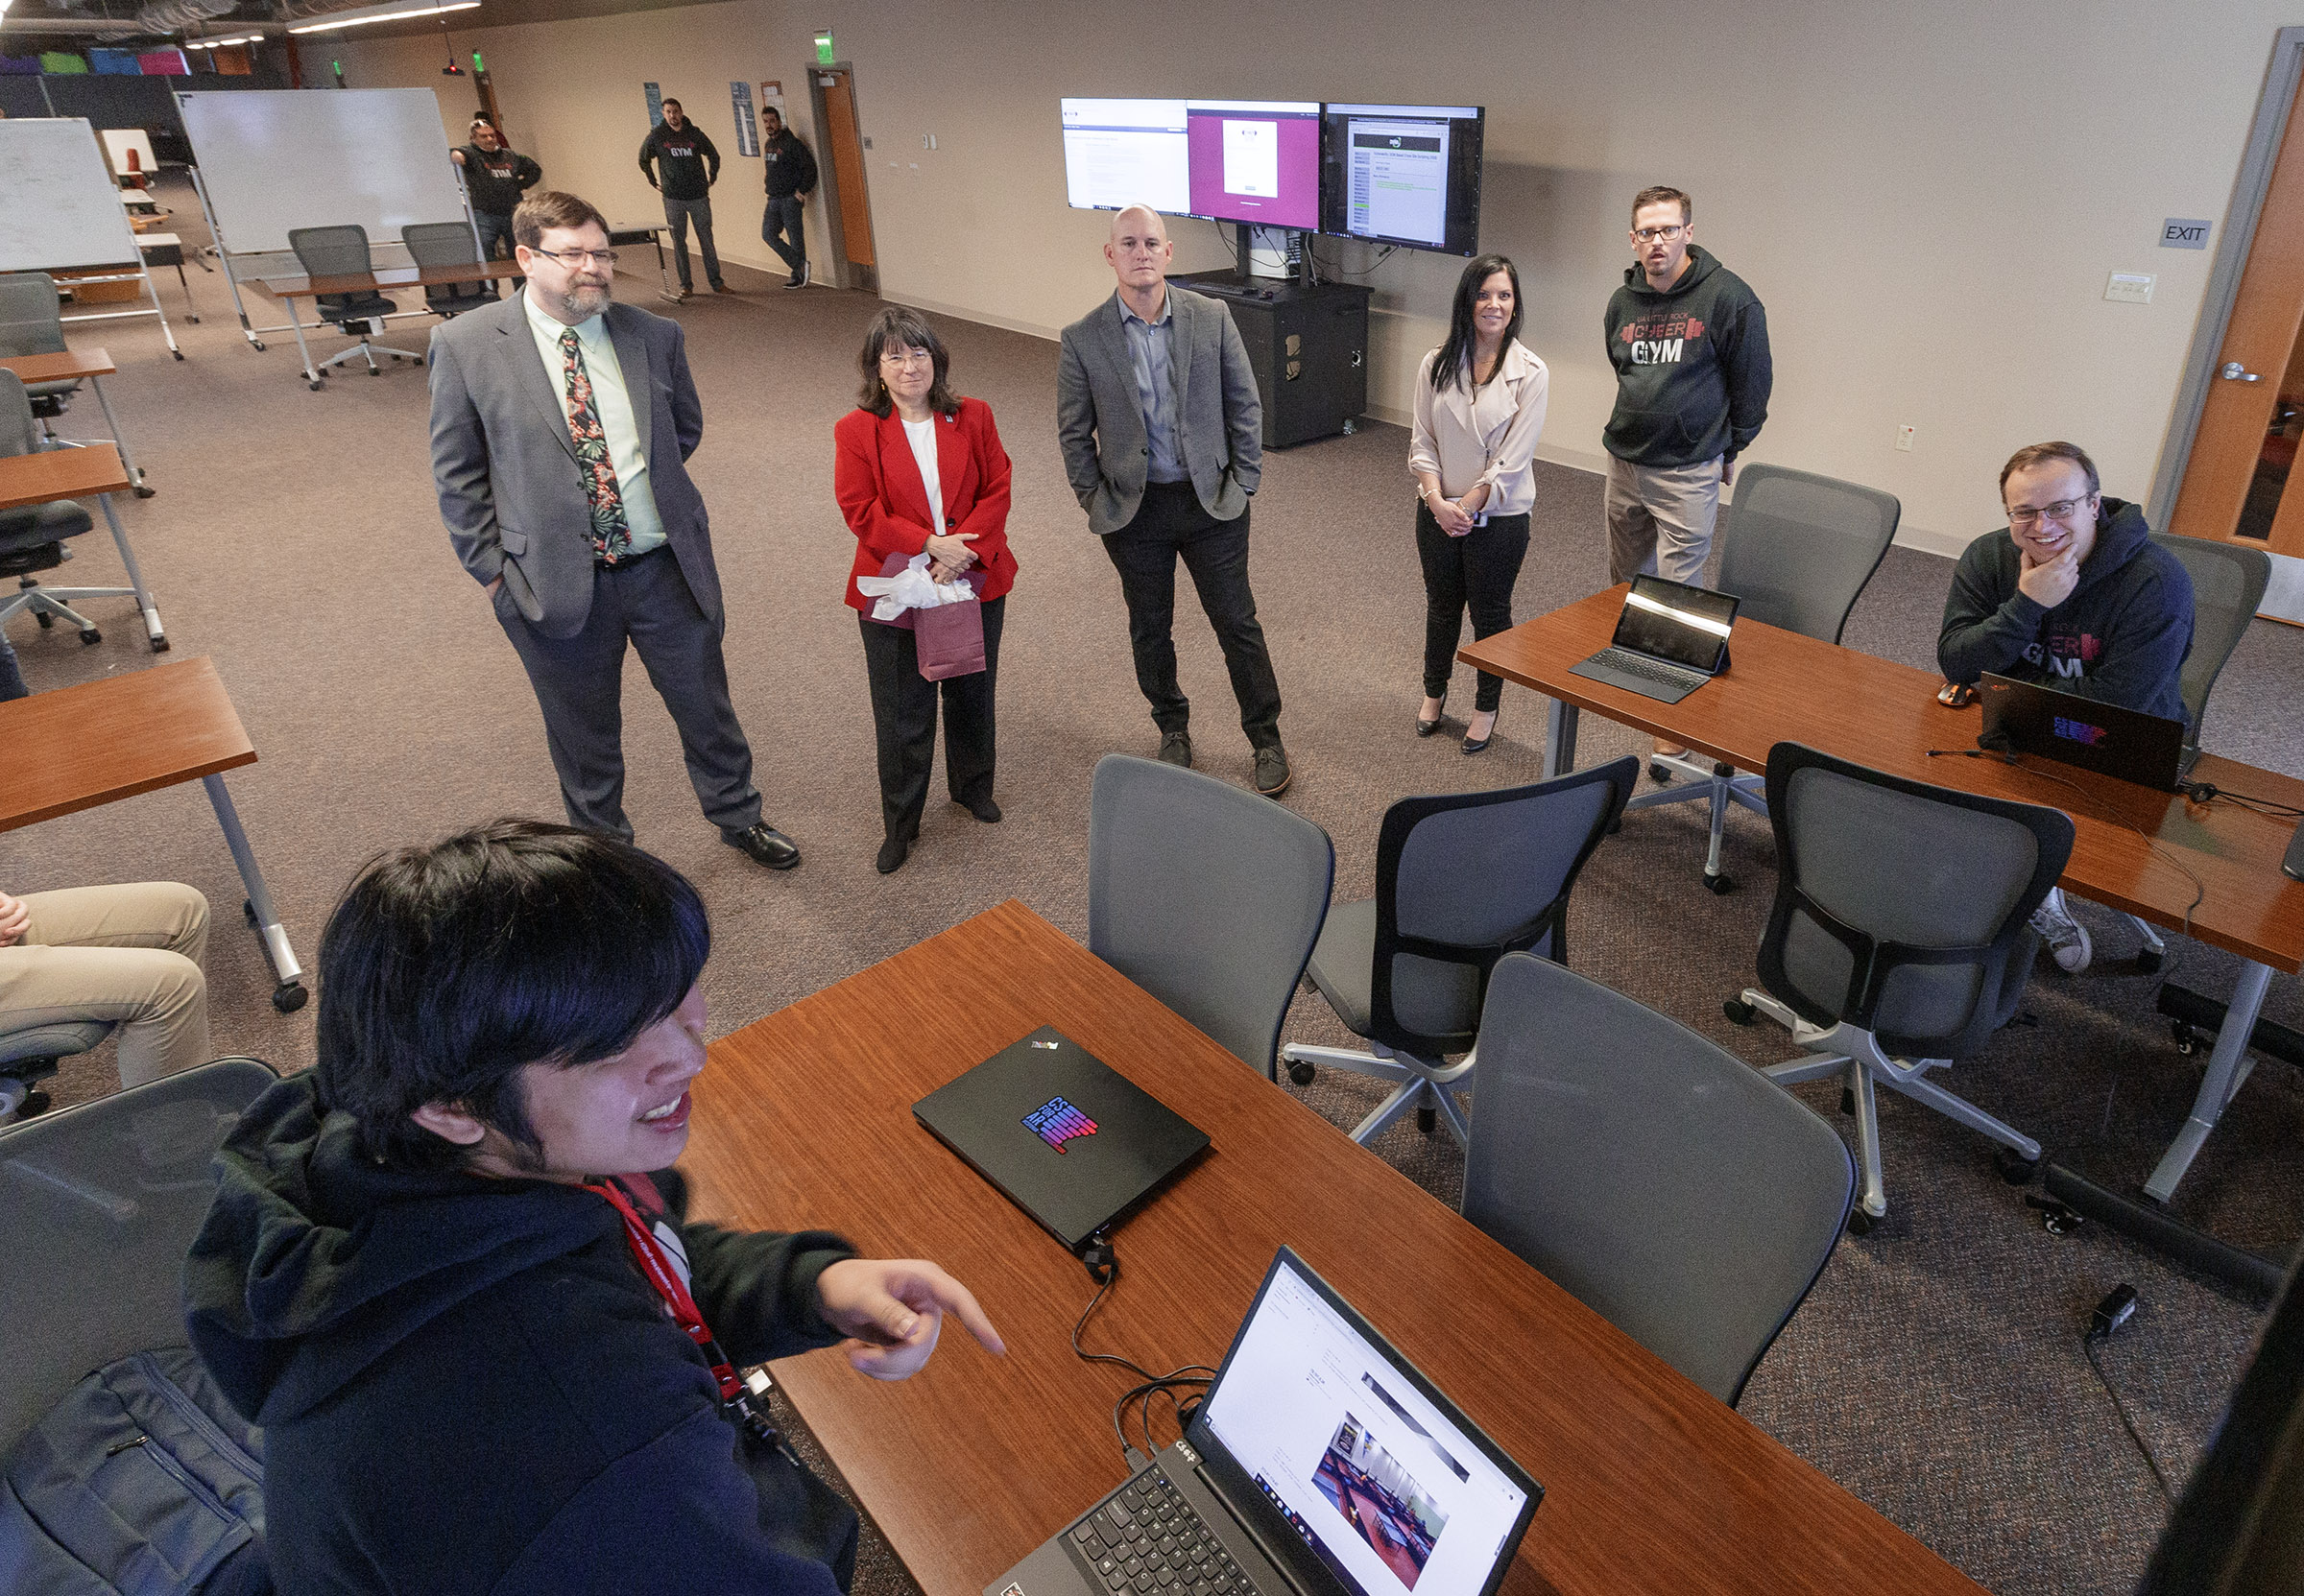 UA Little Rock students demonstrate the university's new cloud-based cybersecurity lab, the CyberGym.